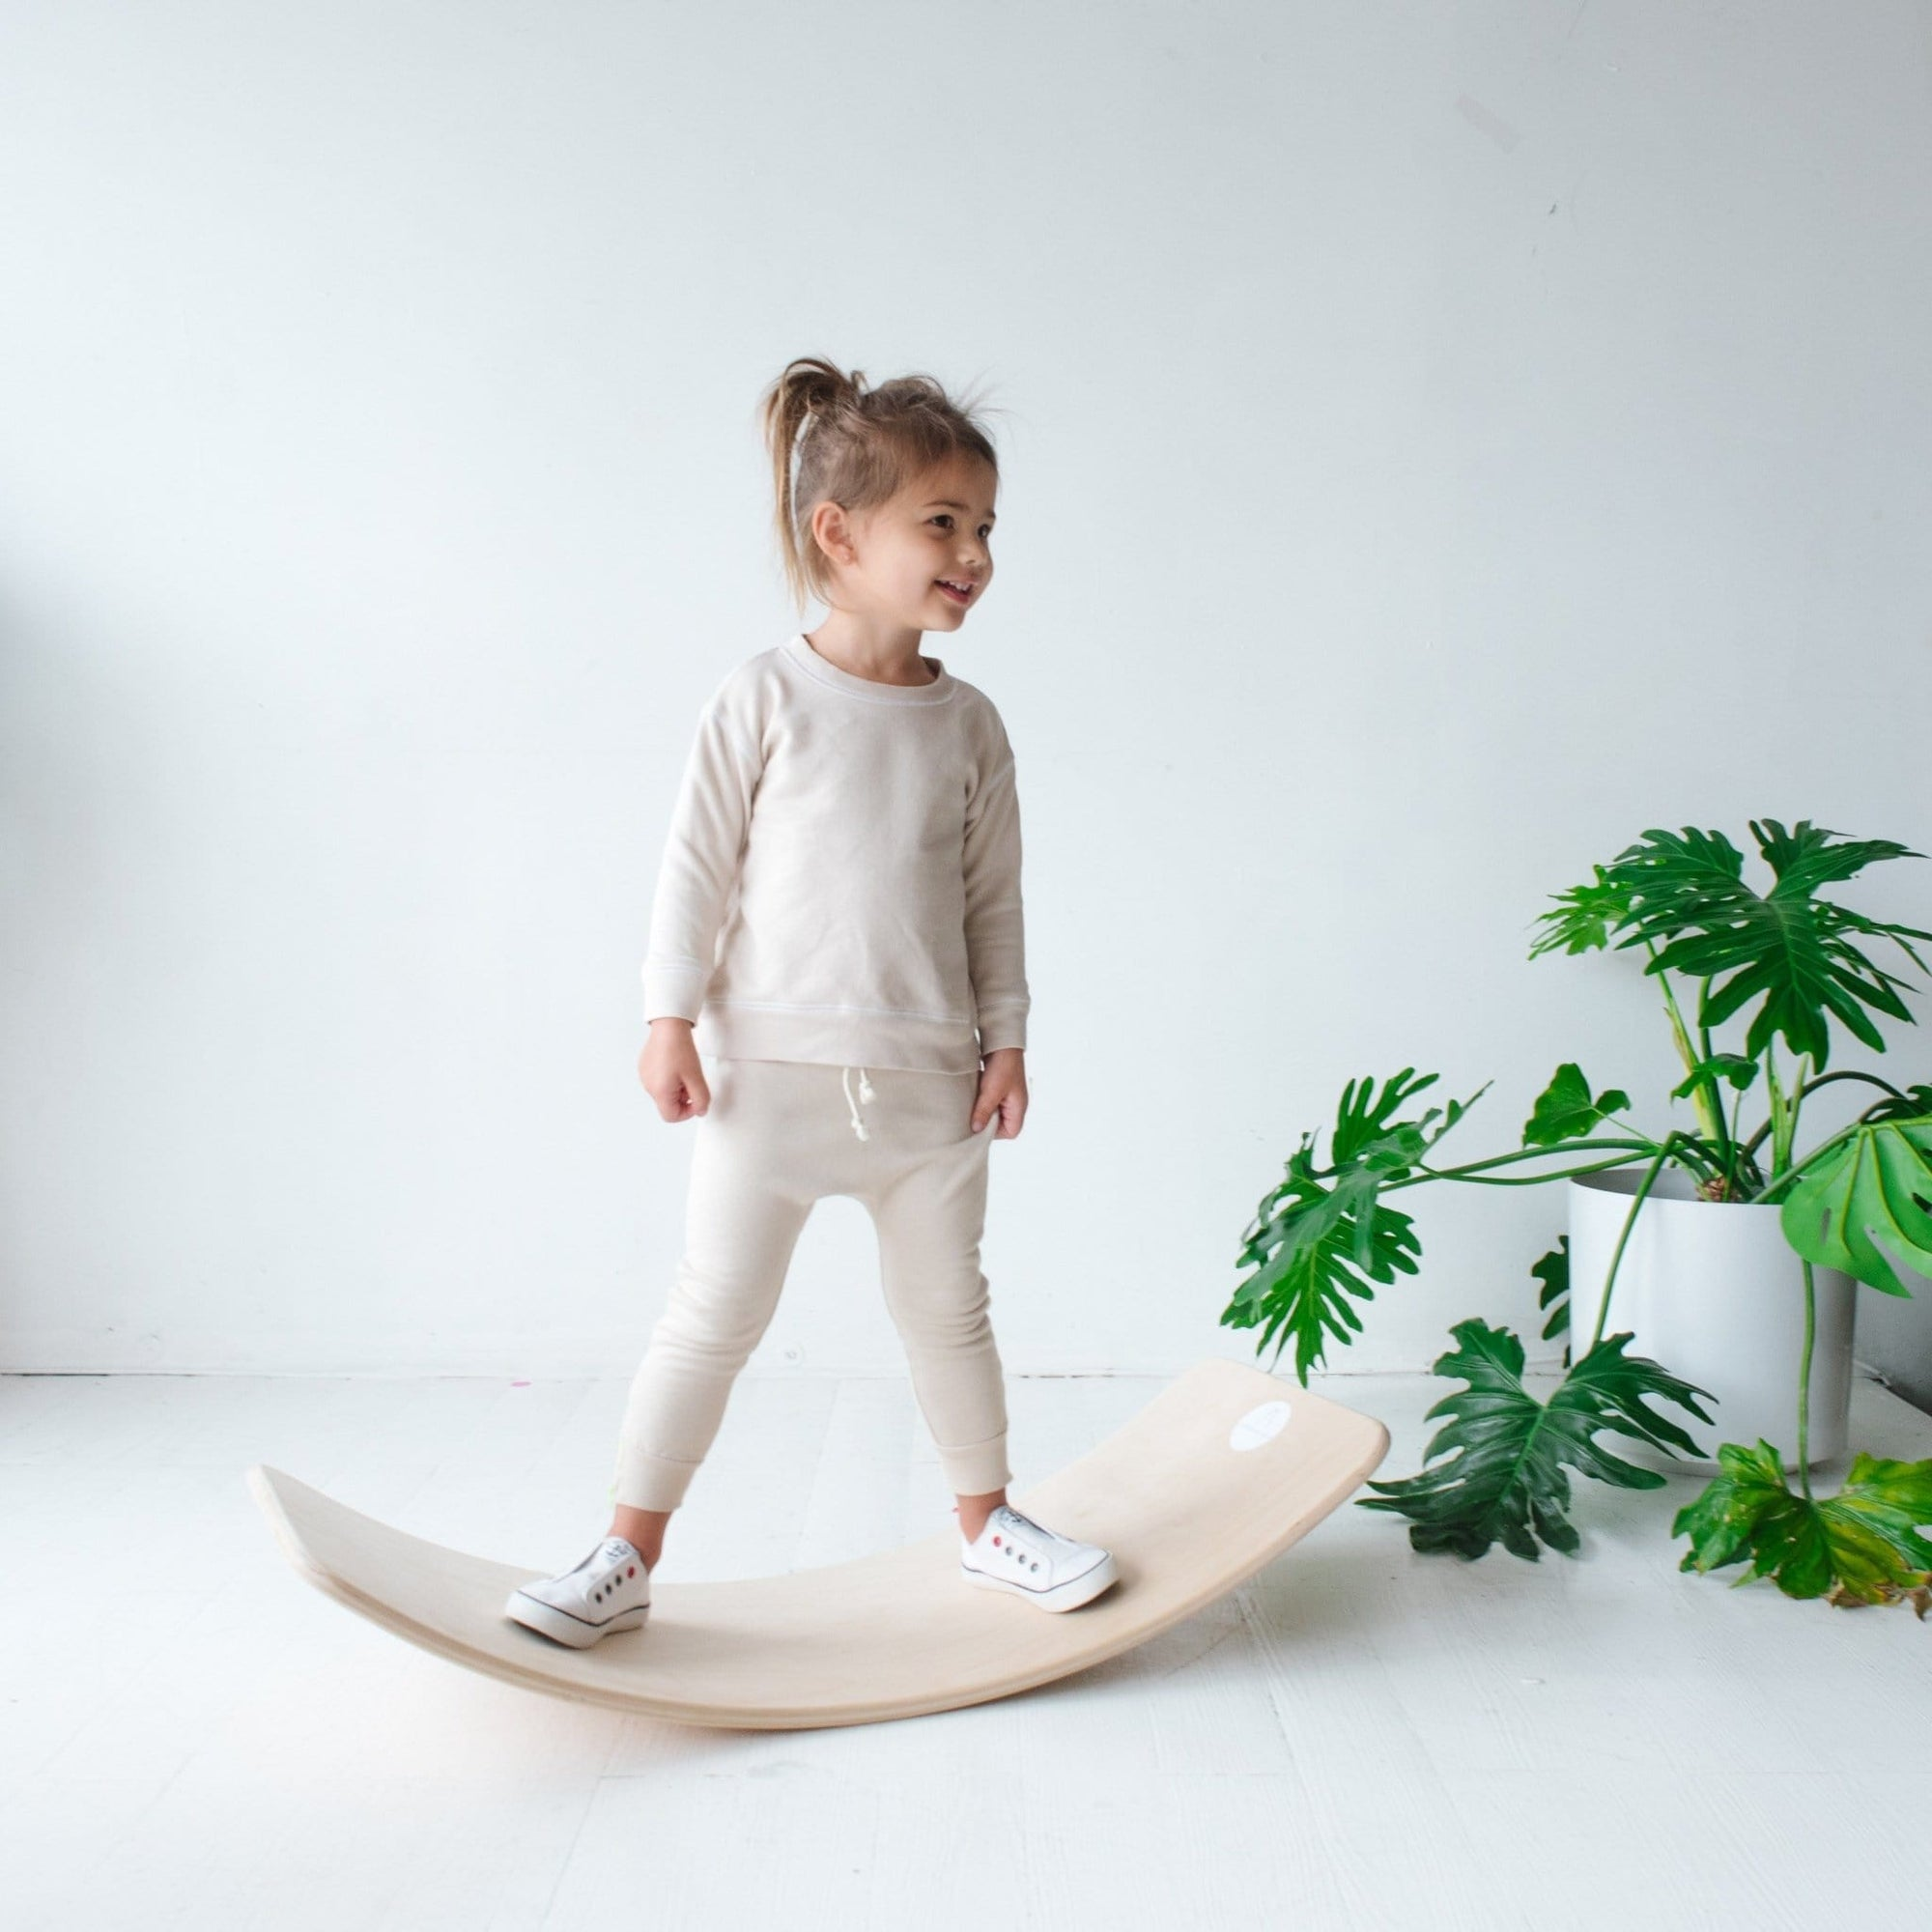 Kimboo Balance Board - The Montessori Room indoor activities